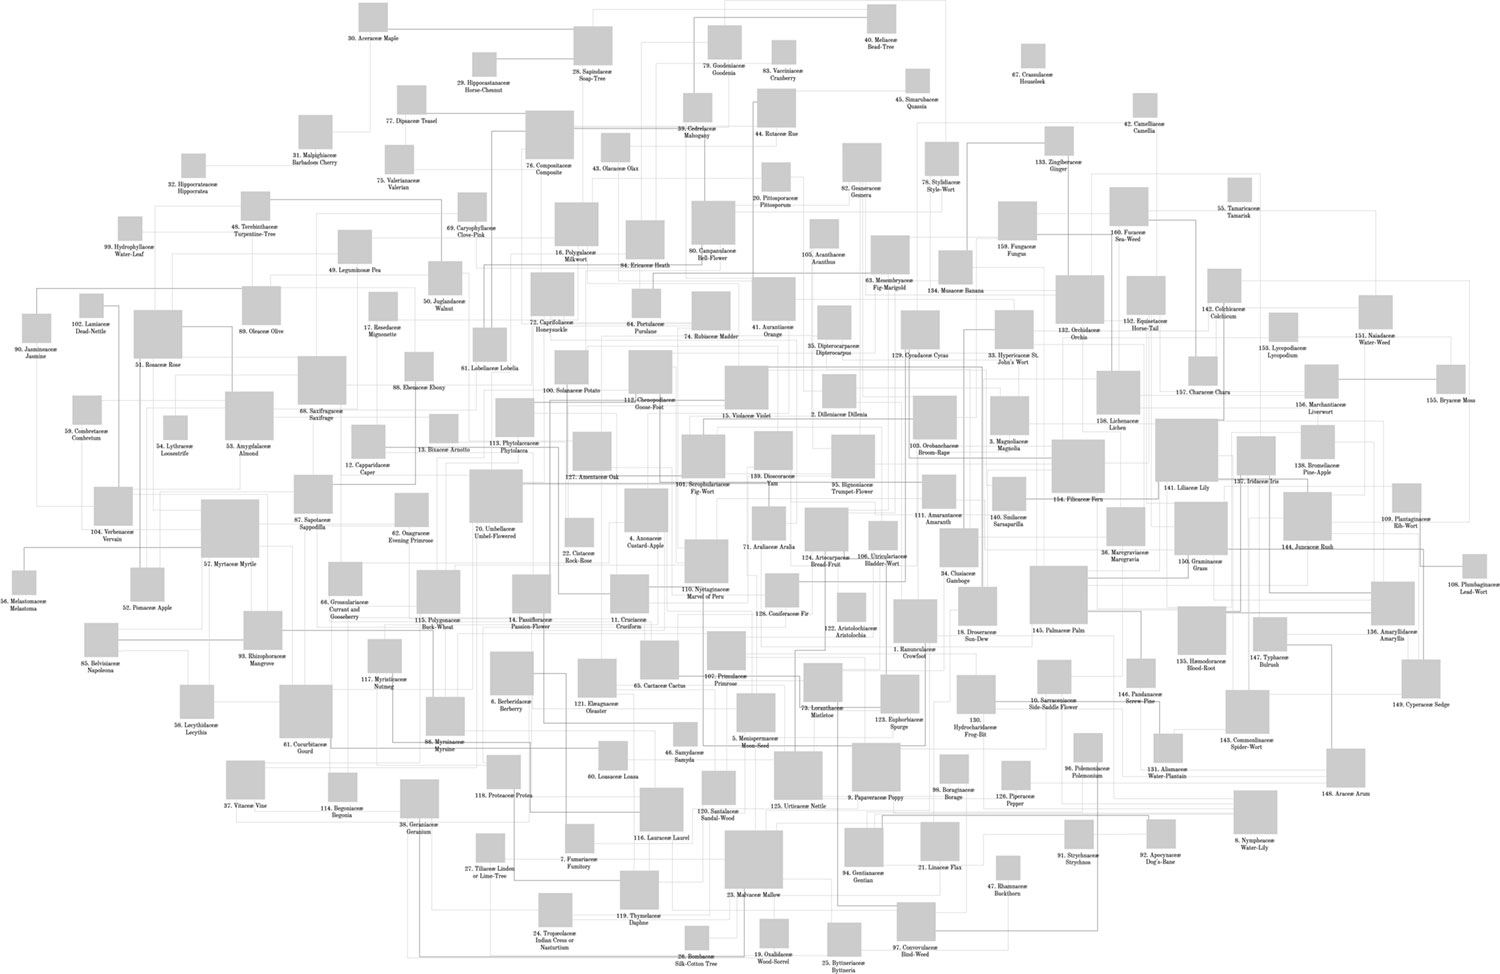 Initial export from Cytoscape